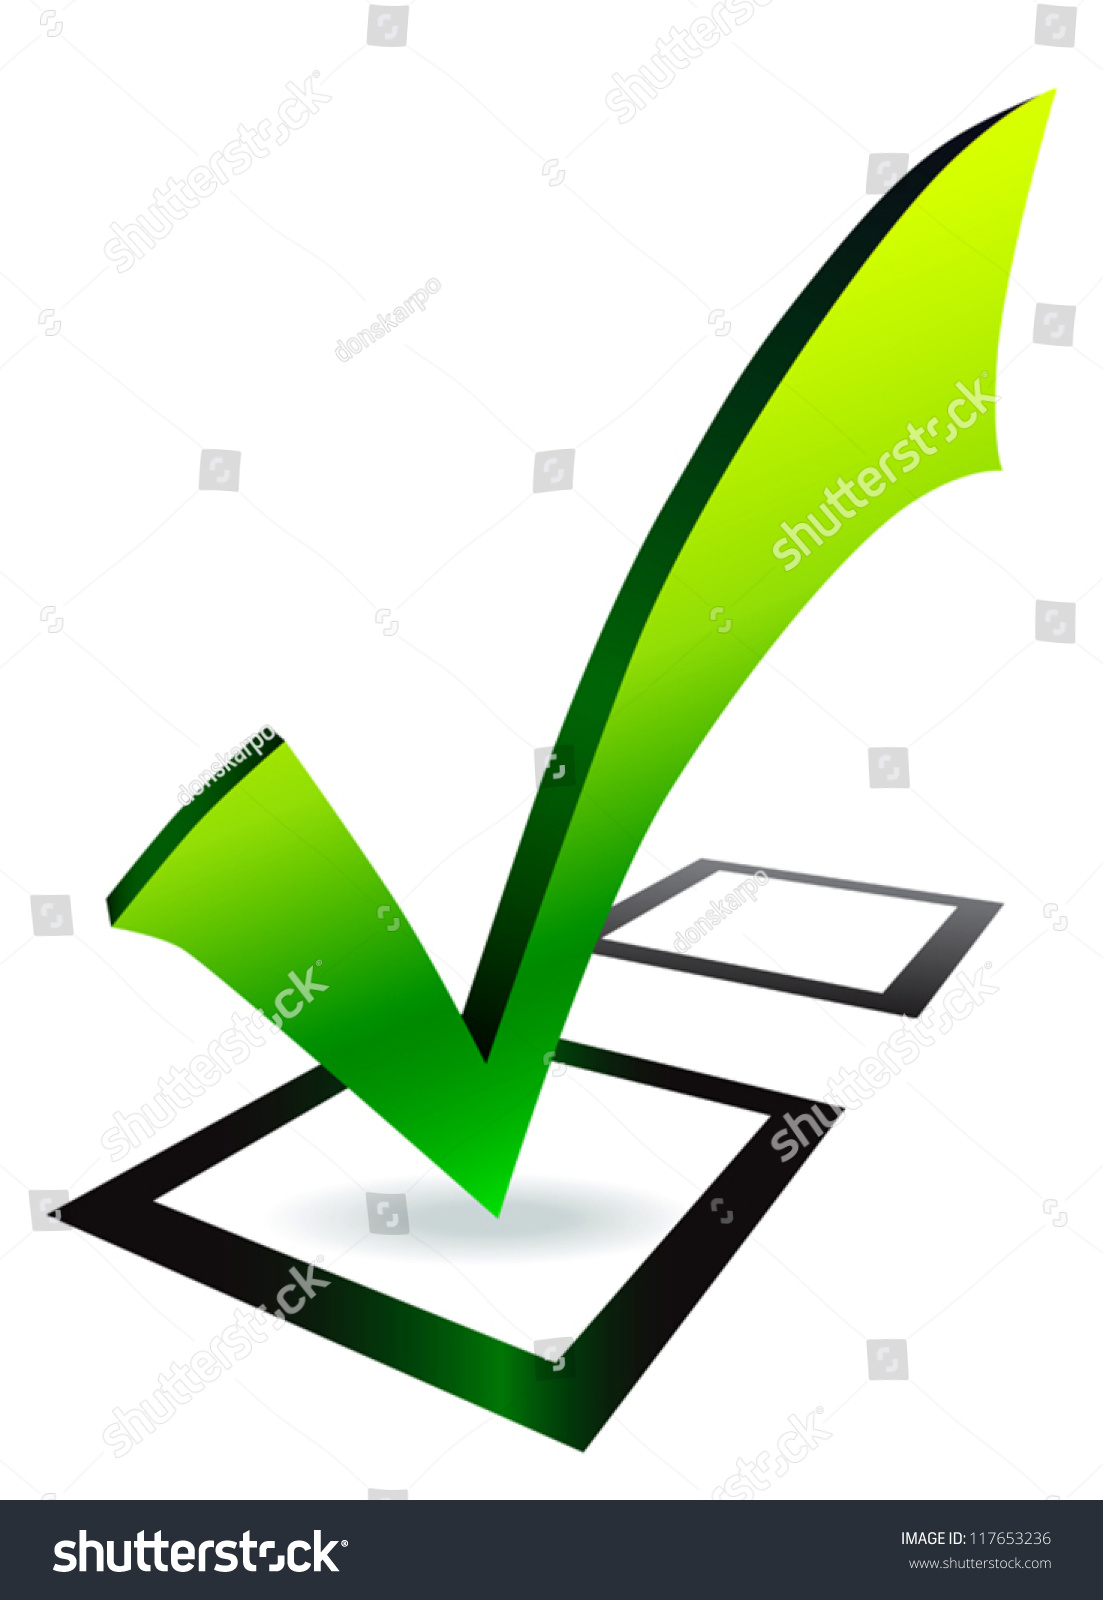 Check mark green symbol black box stock vector 117653236 shutterstock check mark green symbol in black box on white background biocorpaavc Image collections